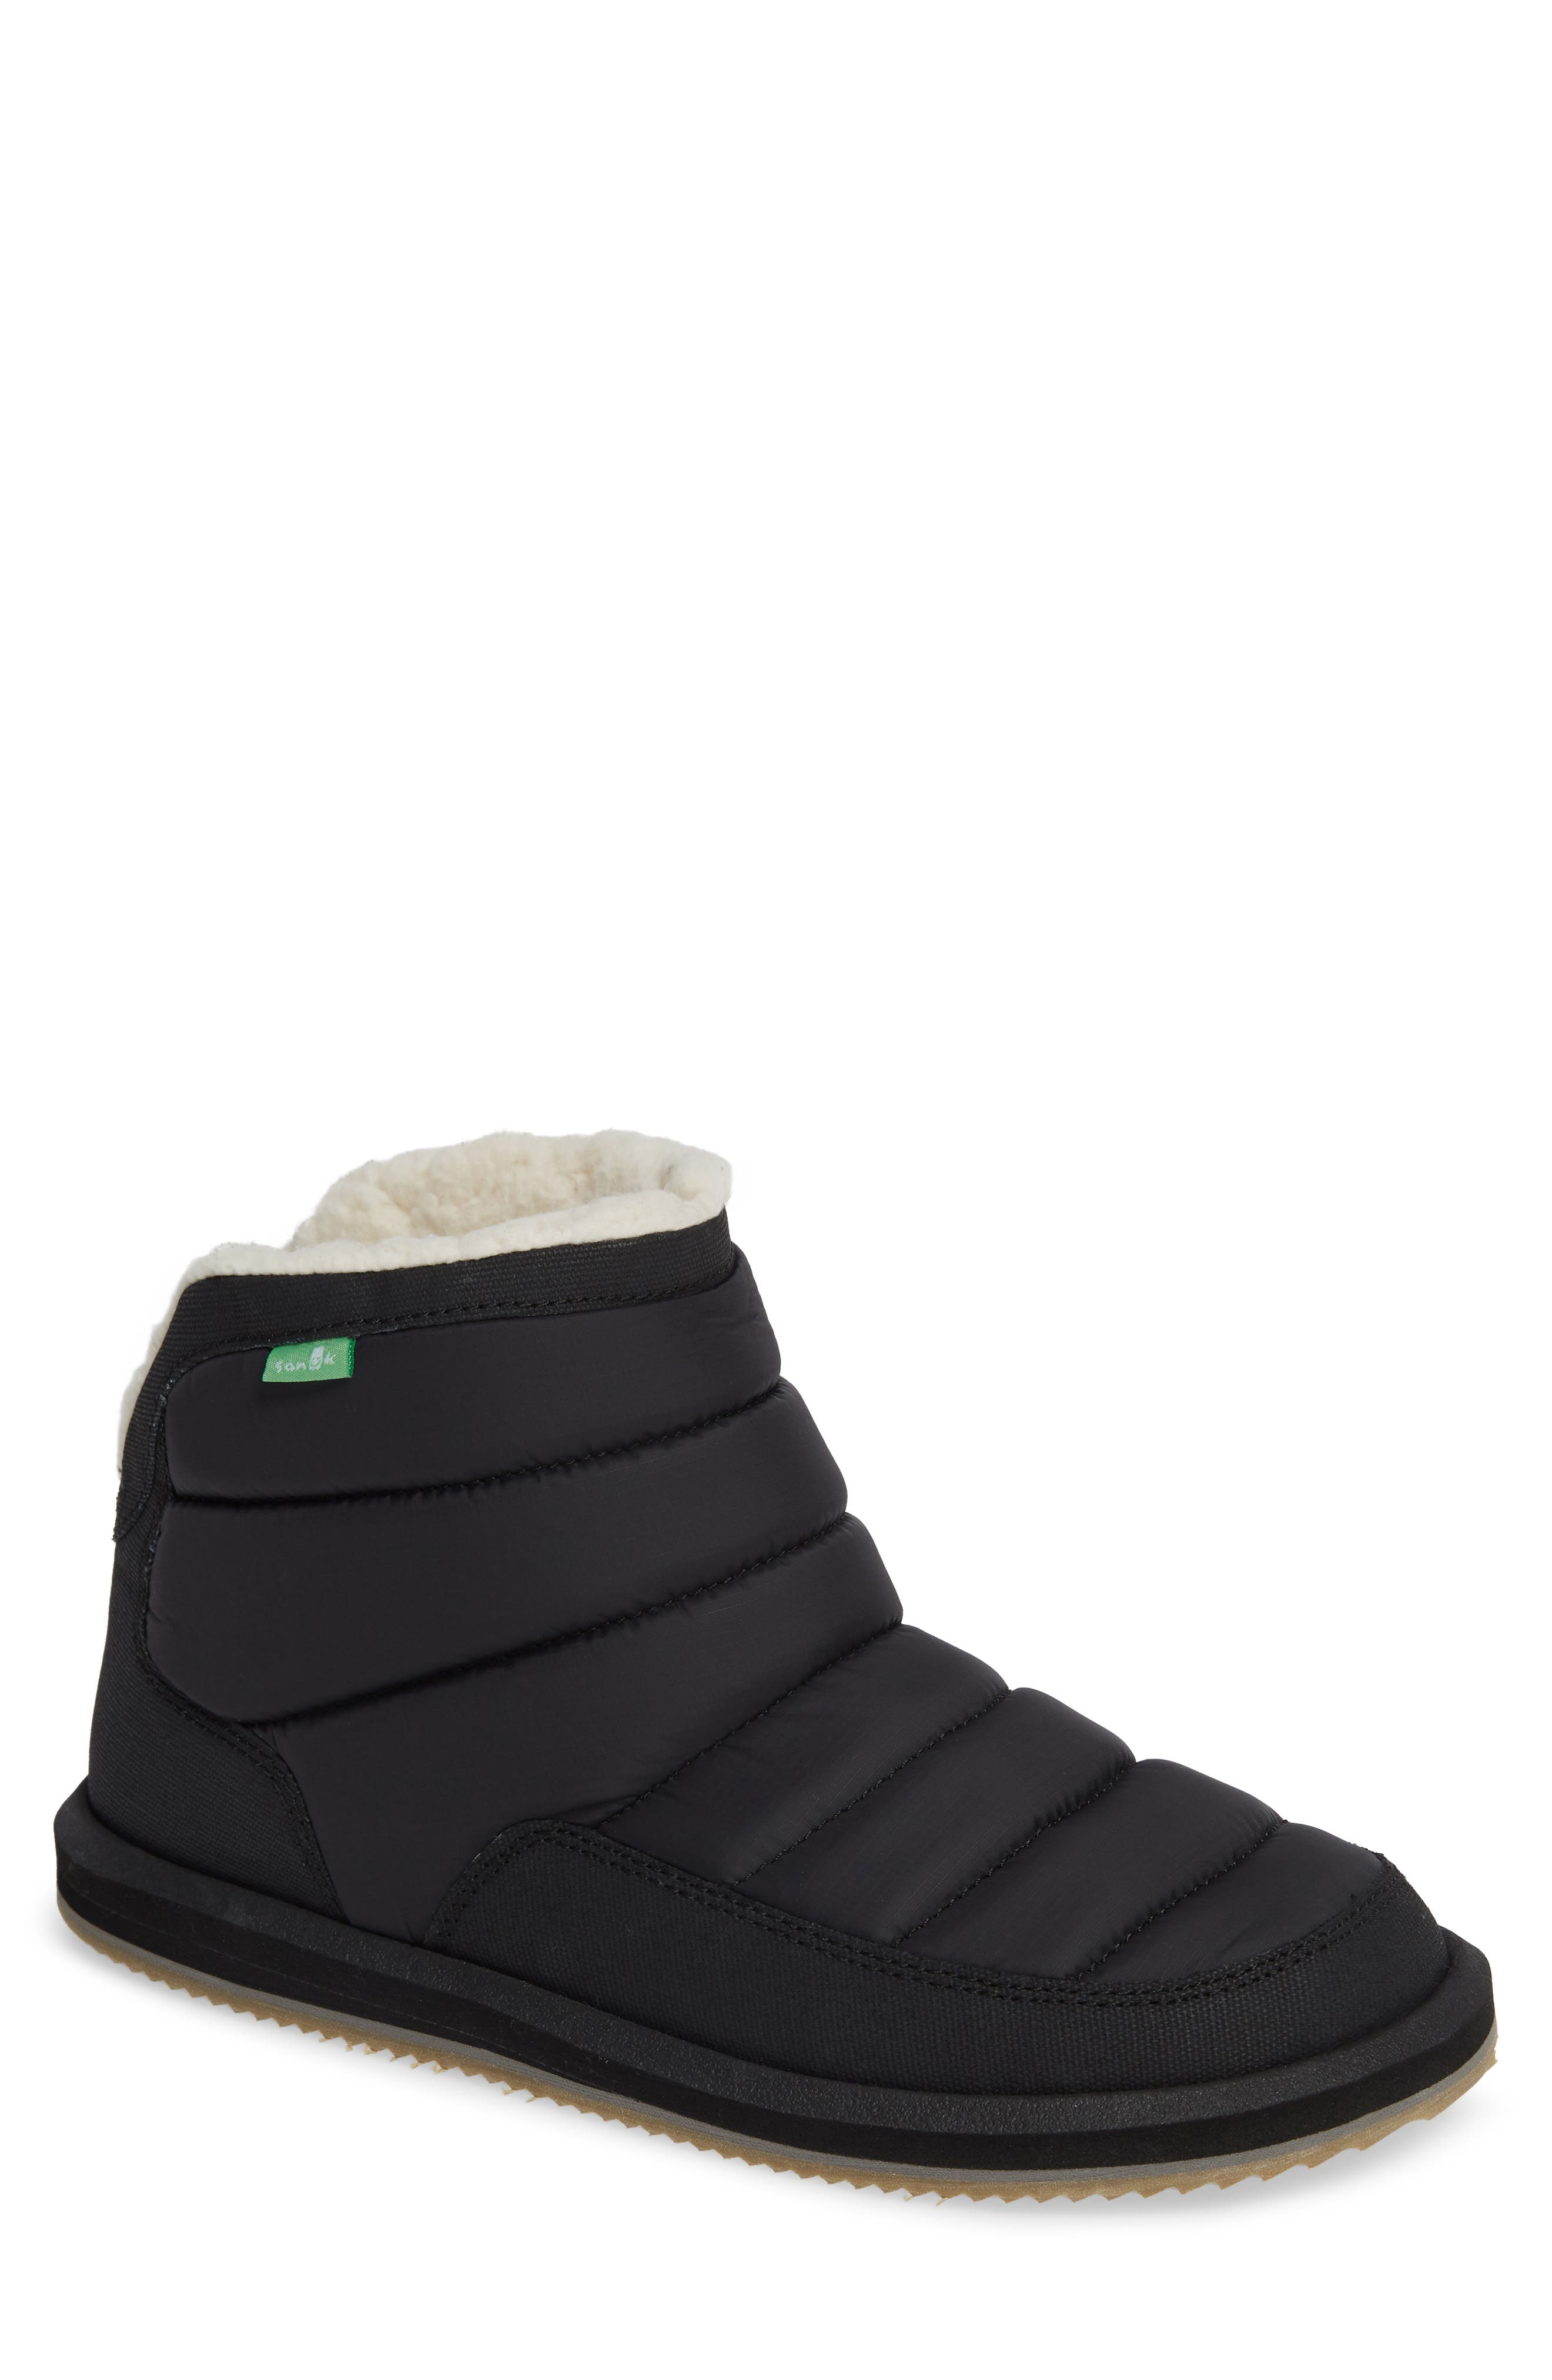 Puff & Chill Weather Boot,                             Main thumbnail 1, color,                             BLACK